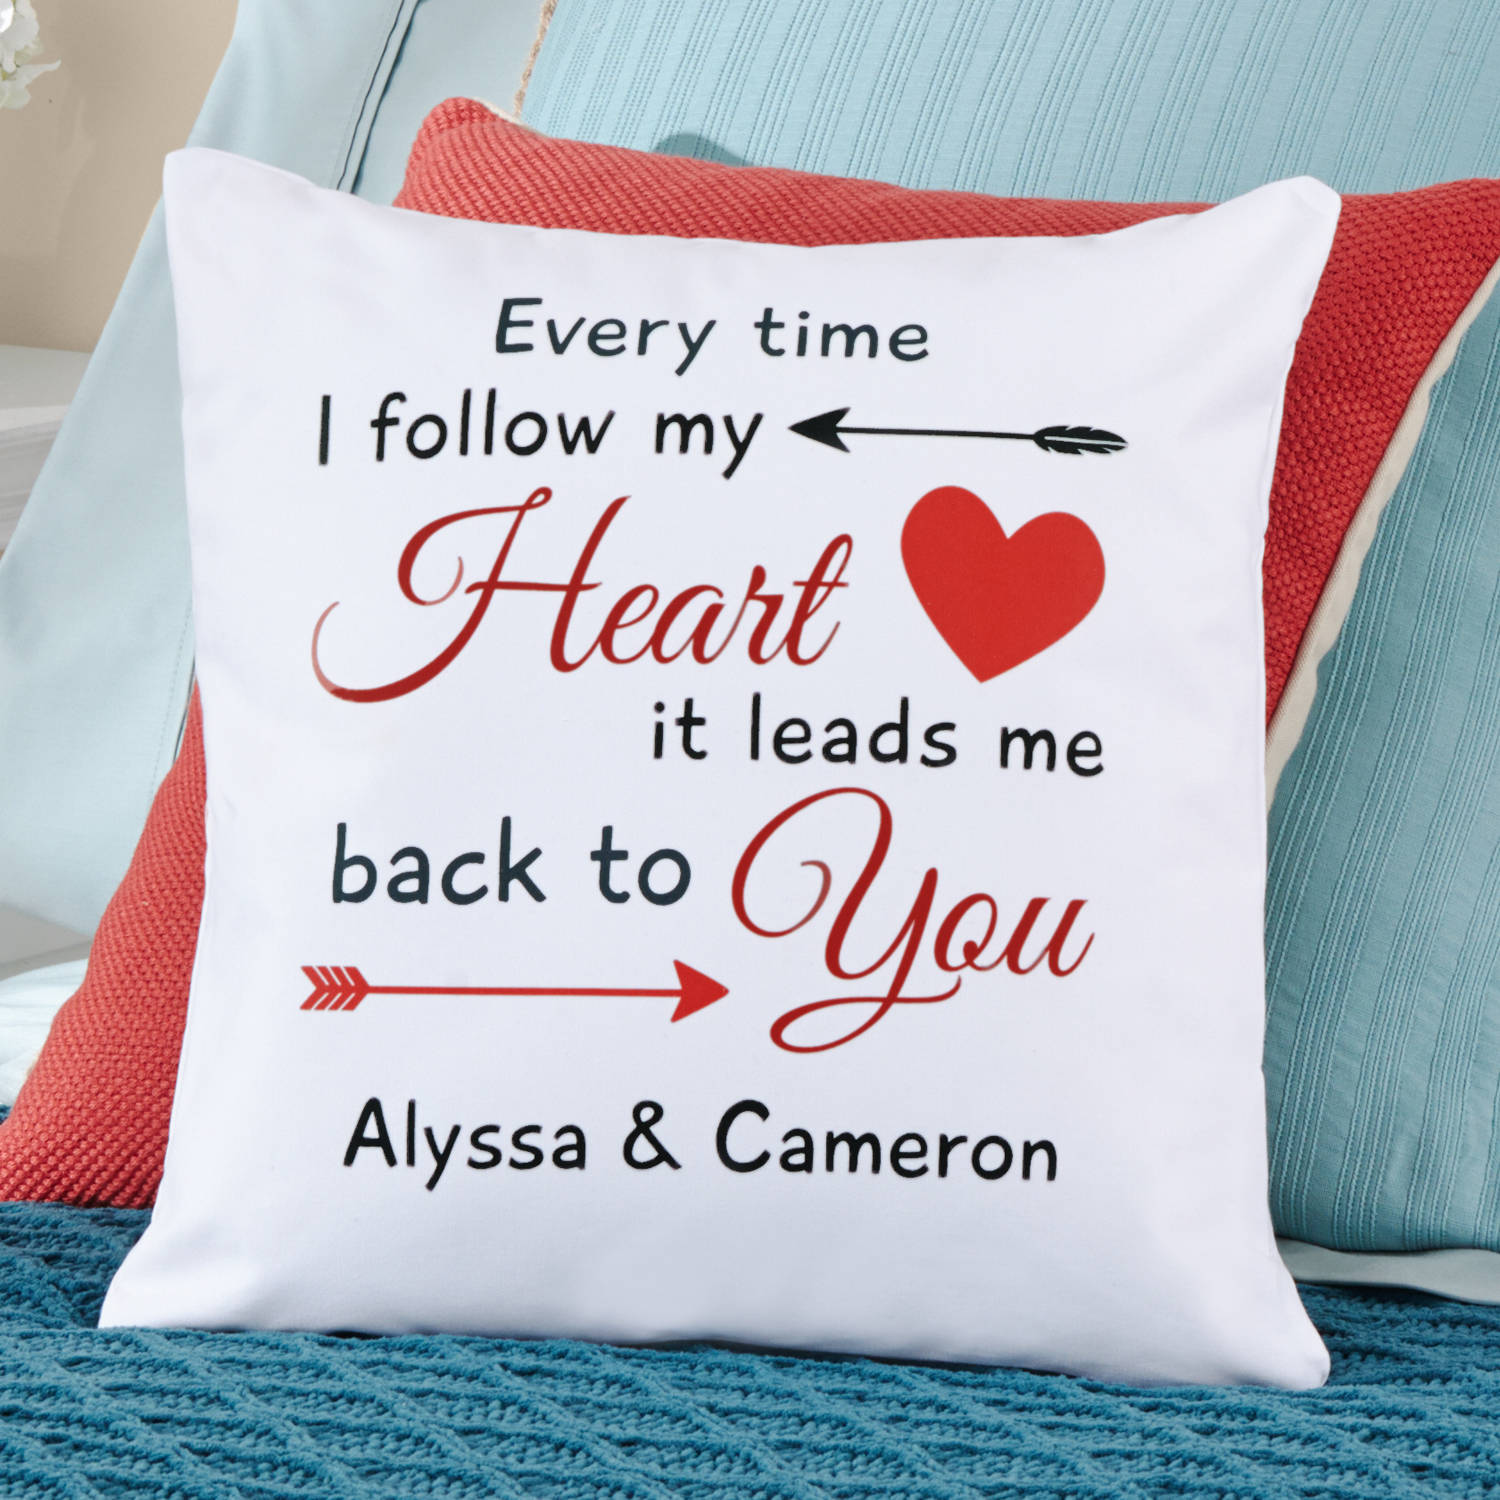 Personalized Follow My Heart Throw Pillow, Available in 2 Colors